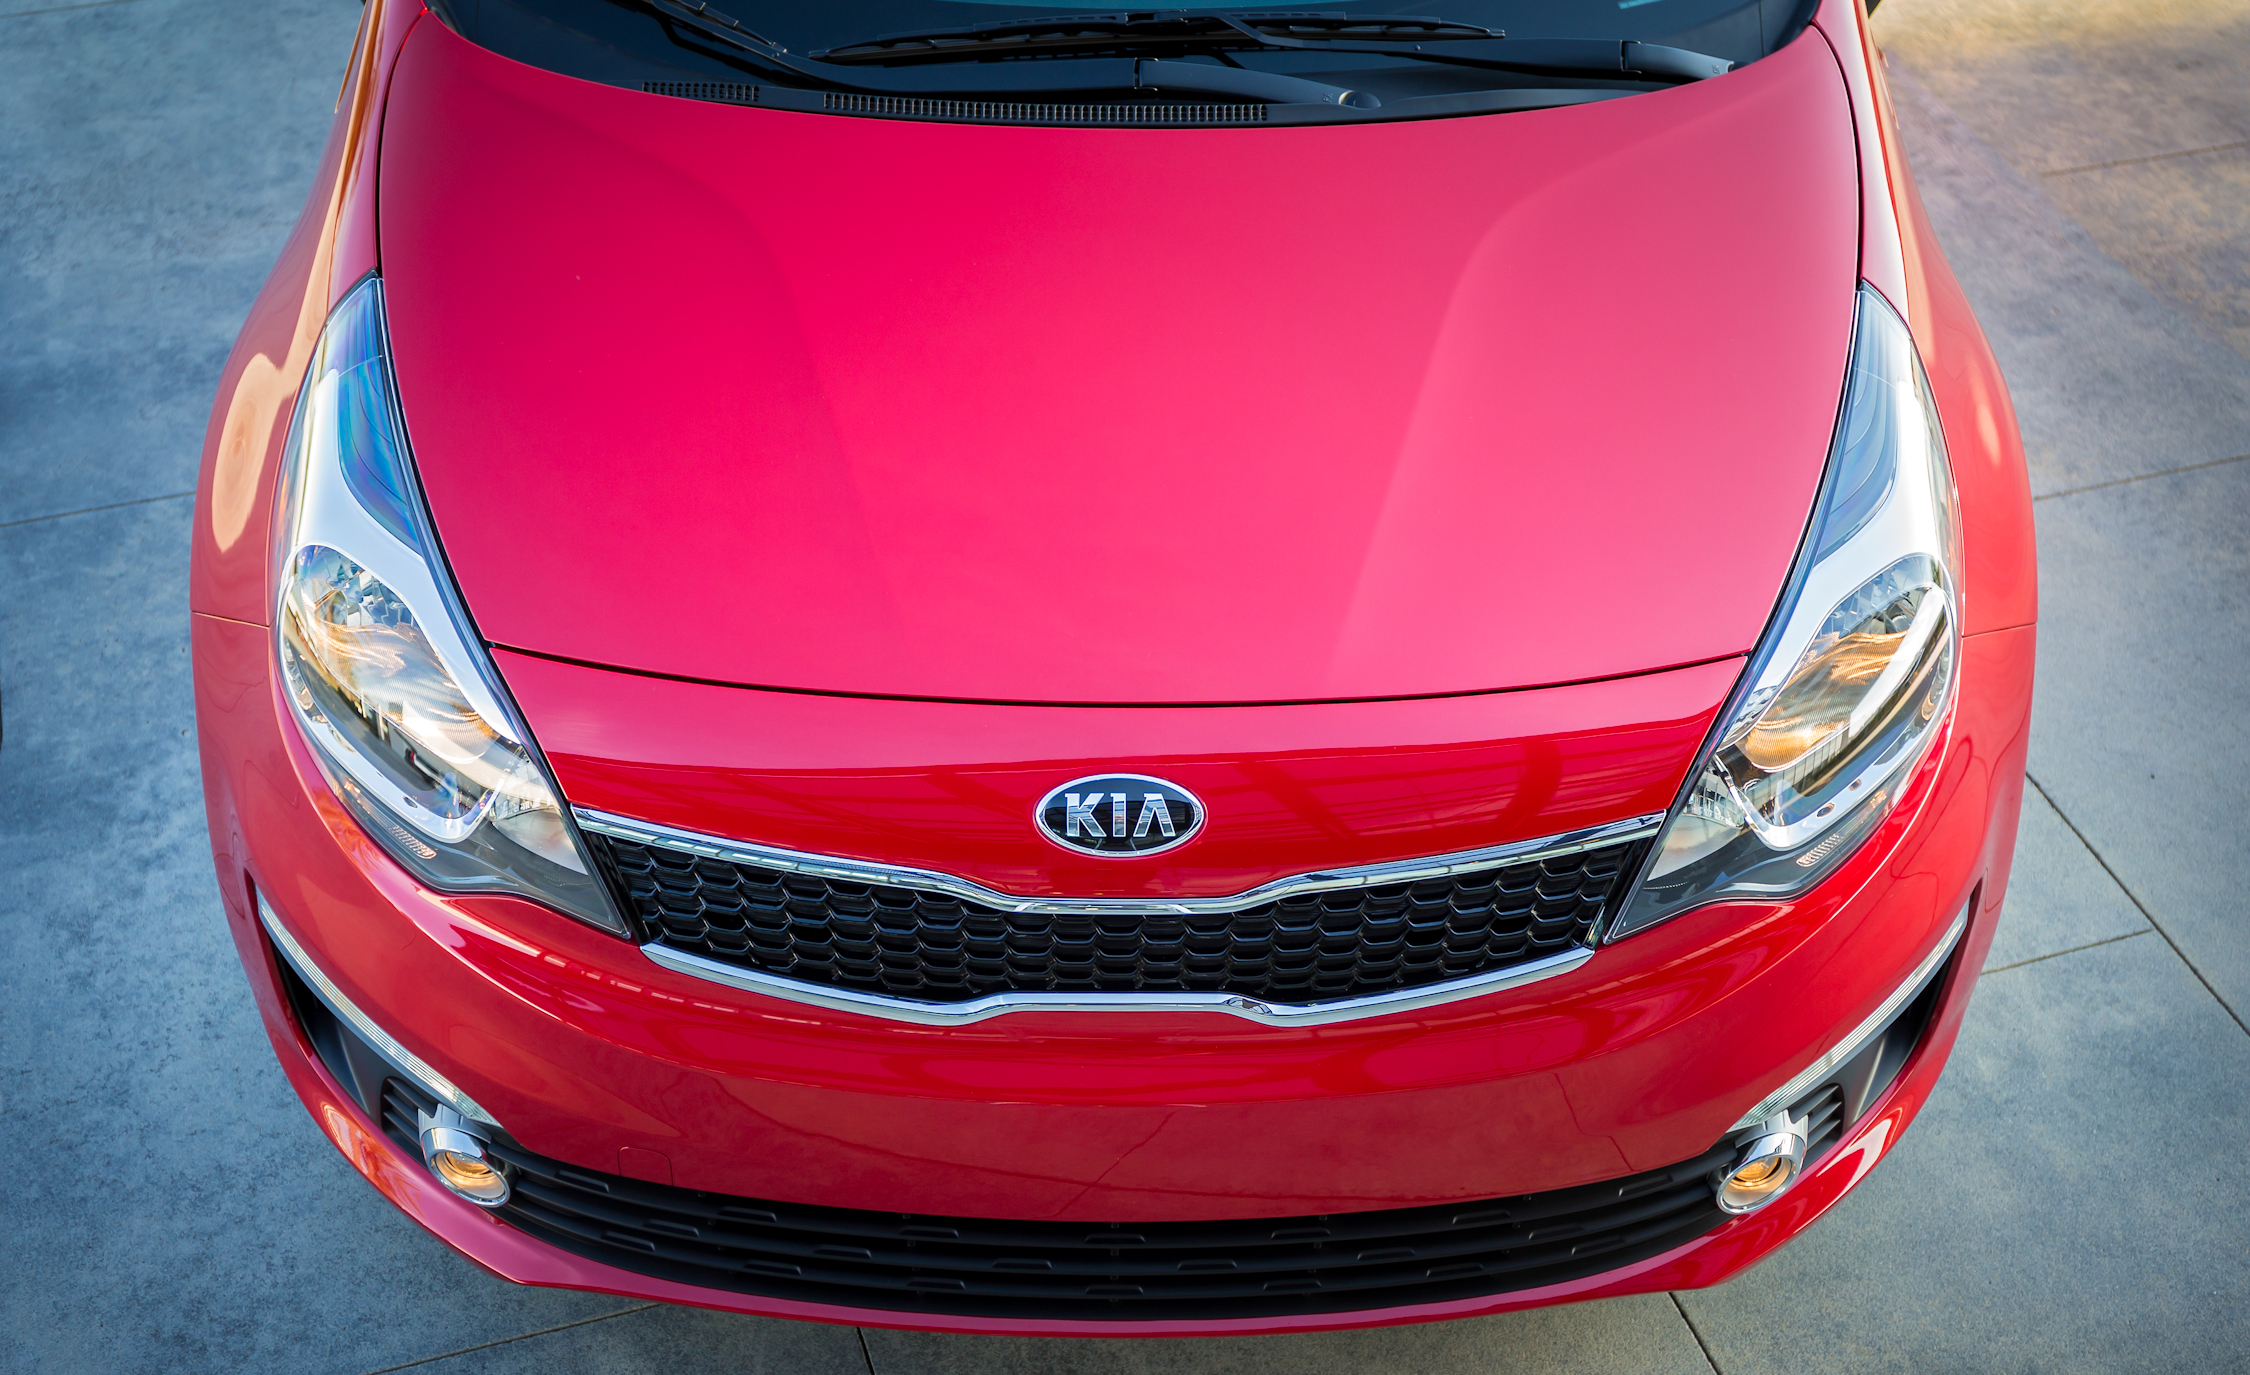 2016 Kia Rio Sedan (View 12 of 19)